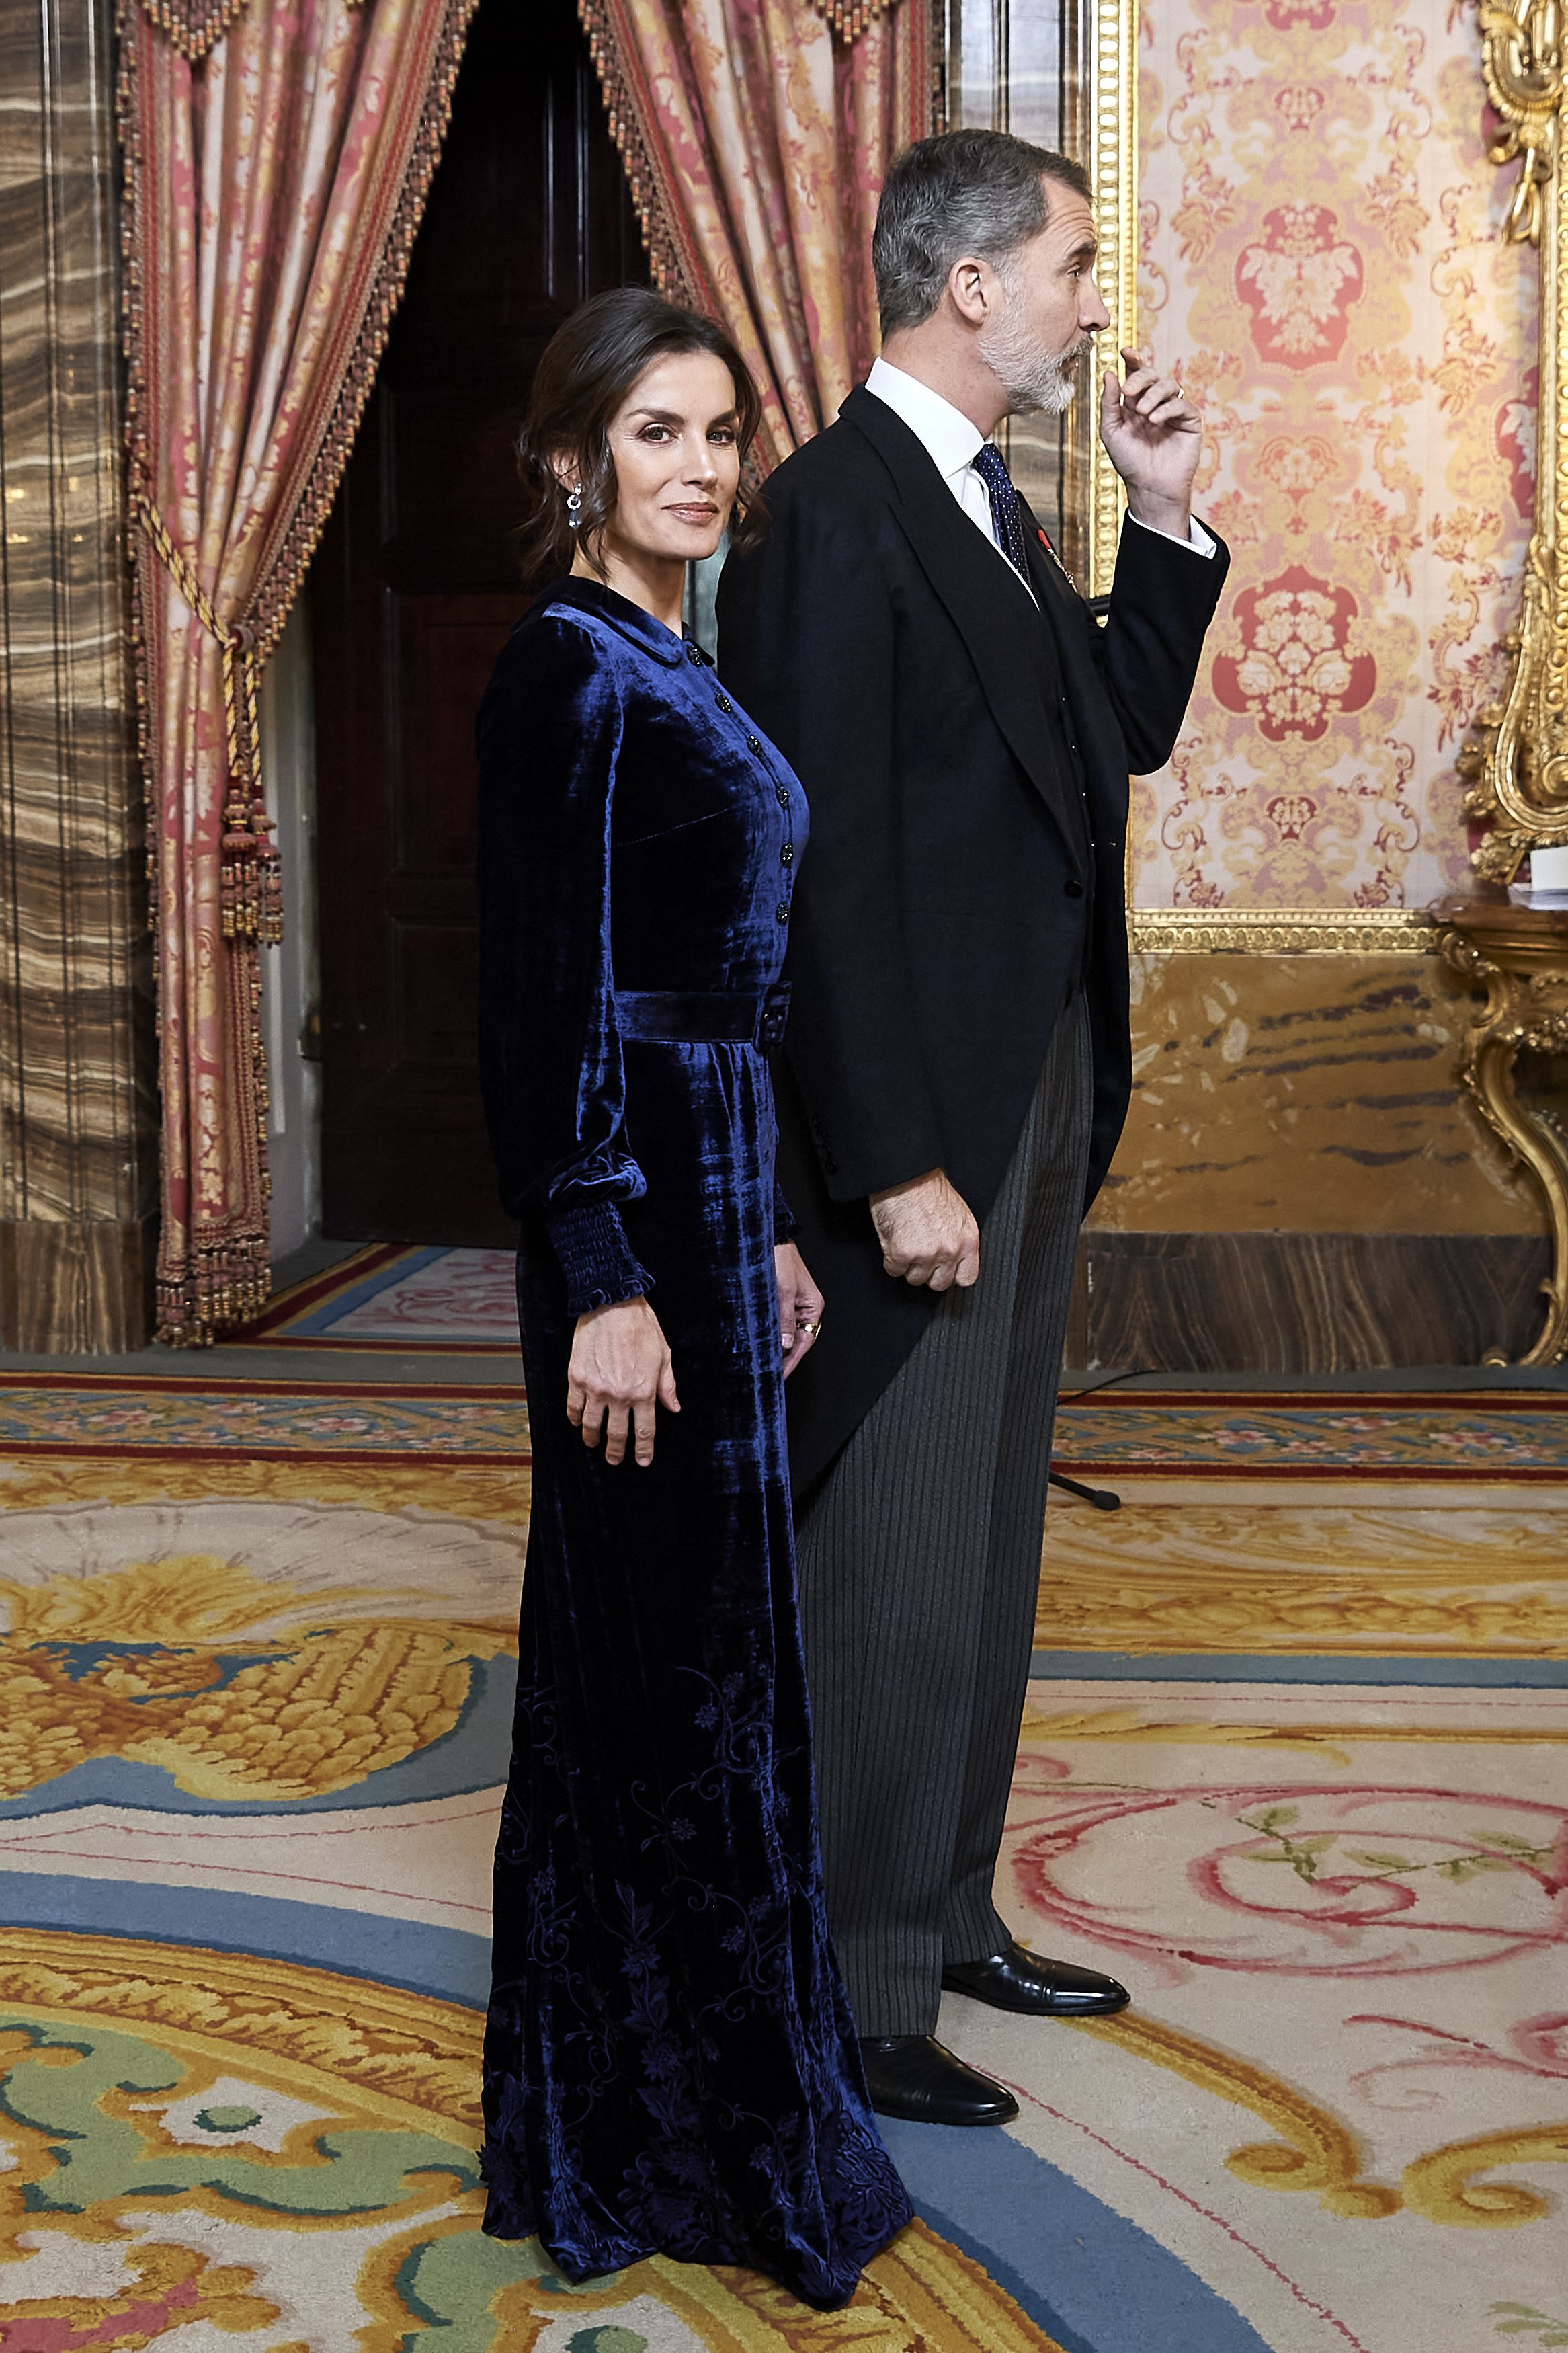 Queen Letizia S Style Queen Of Spain S Best Fashion Moments